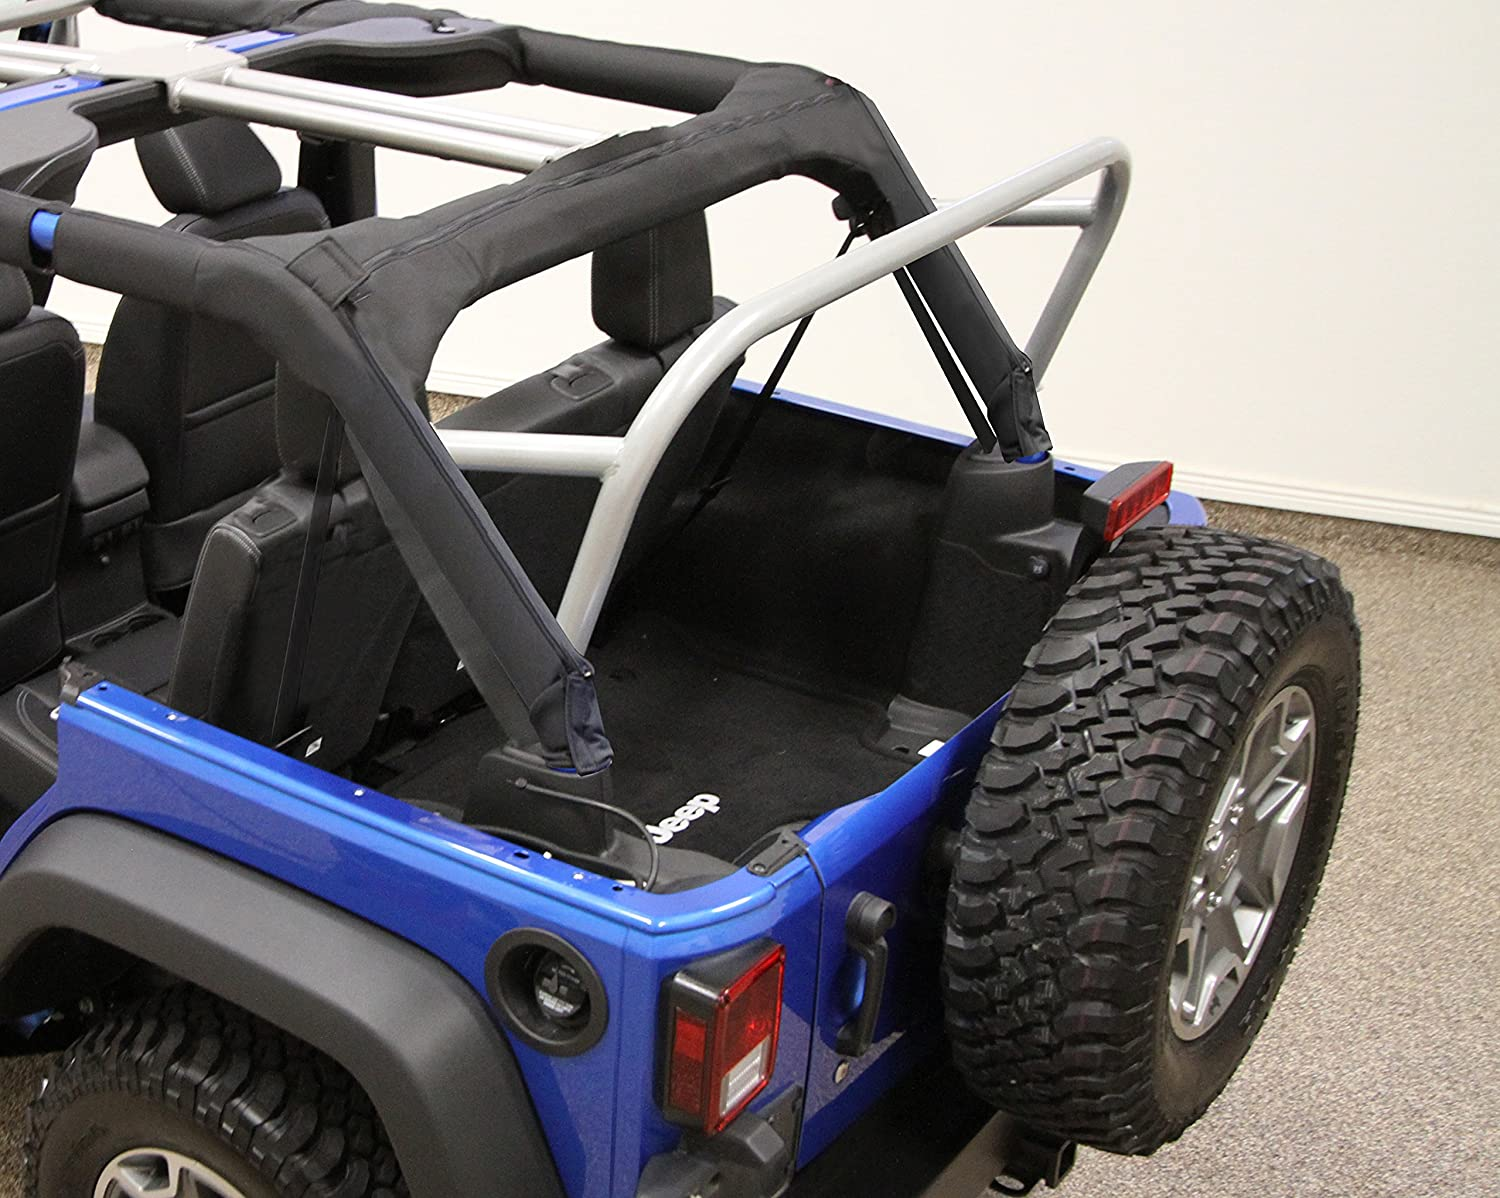 Jeep Wrangler Accessories 2017 >> Amazon Com Rock Hard 4x4 3rd Row Accessory Mount Sport Cage For